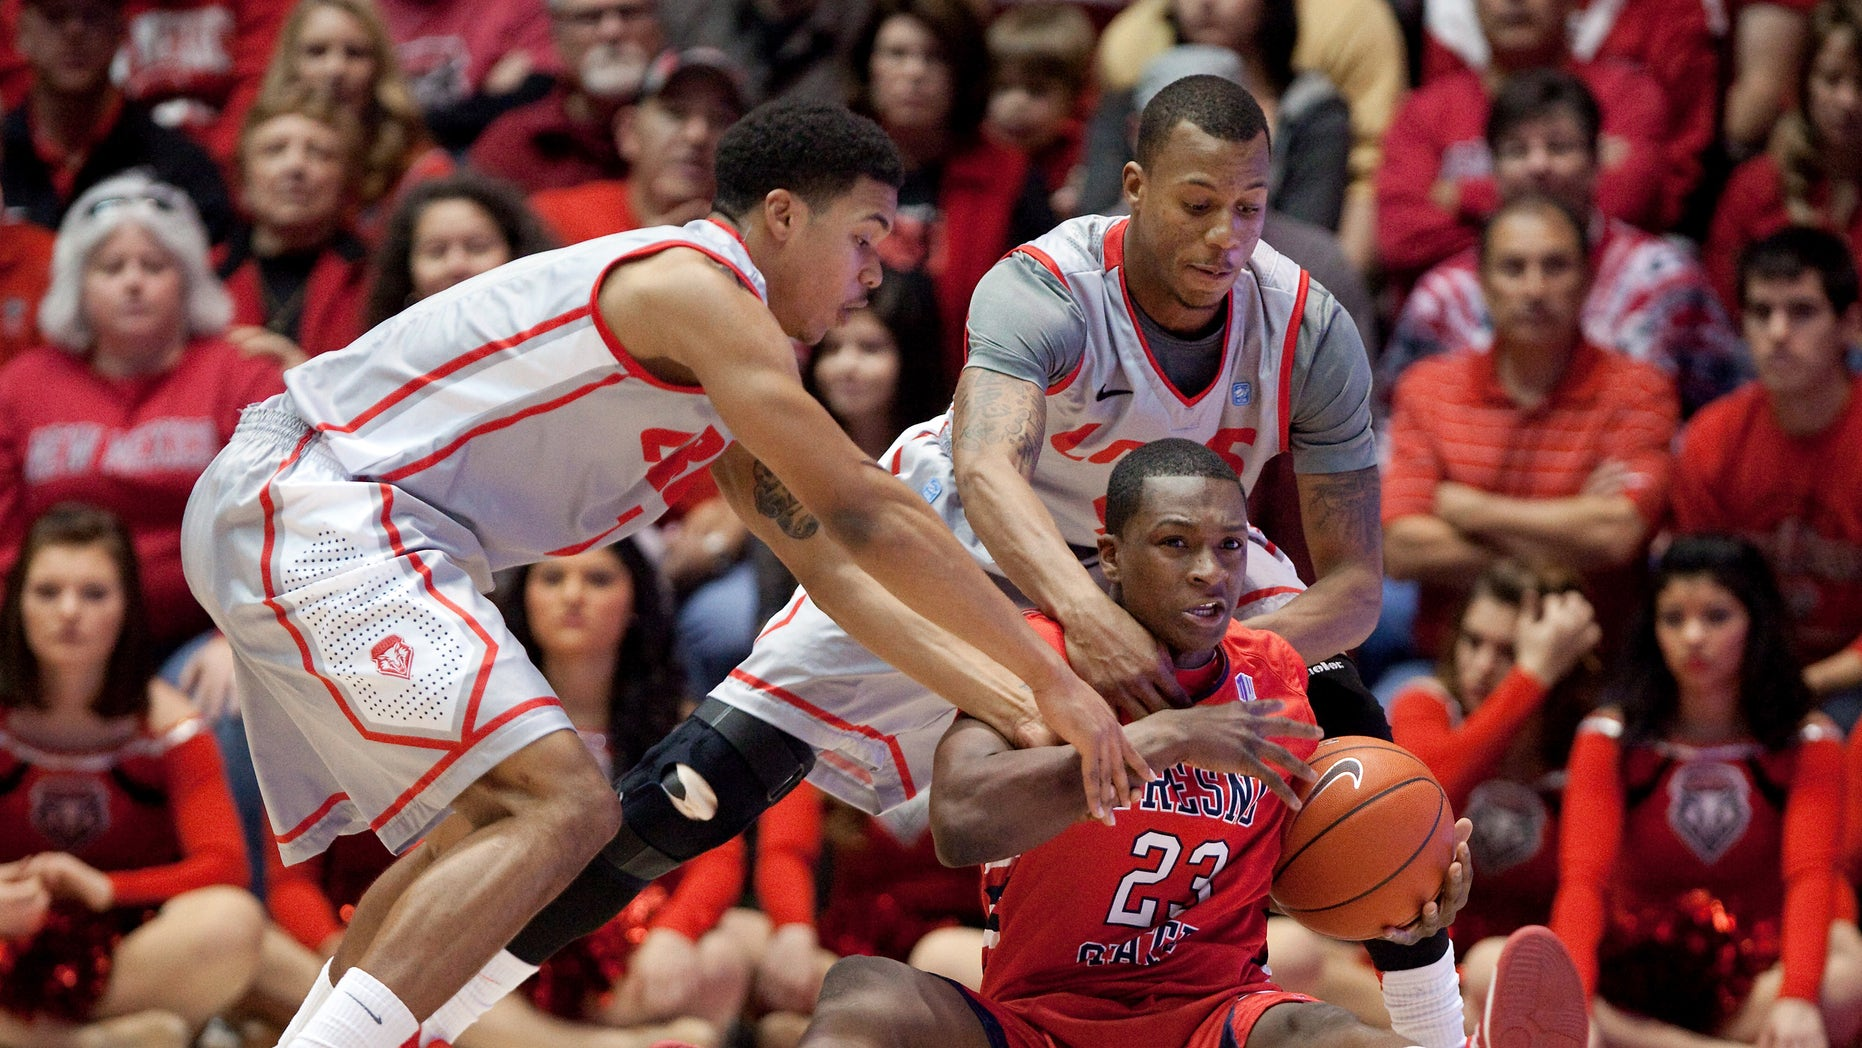 Fresno State's Marvelle Harris (23) hits the floor to recover a loose ball while pressured by New Mexico's Cleveland Thomas, left, and Chad Adams during the first half of an NCAA college basketball game on Saturday, Jan. 12, 2013, in Albuquerque, N.M. (AP Photo/Eric Draper)